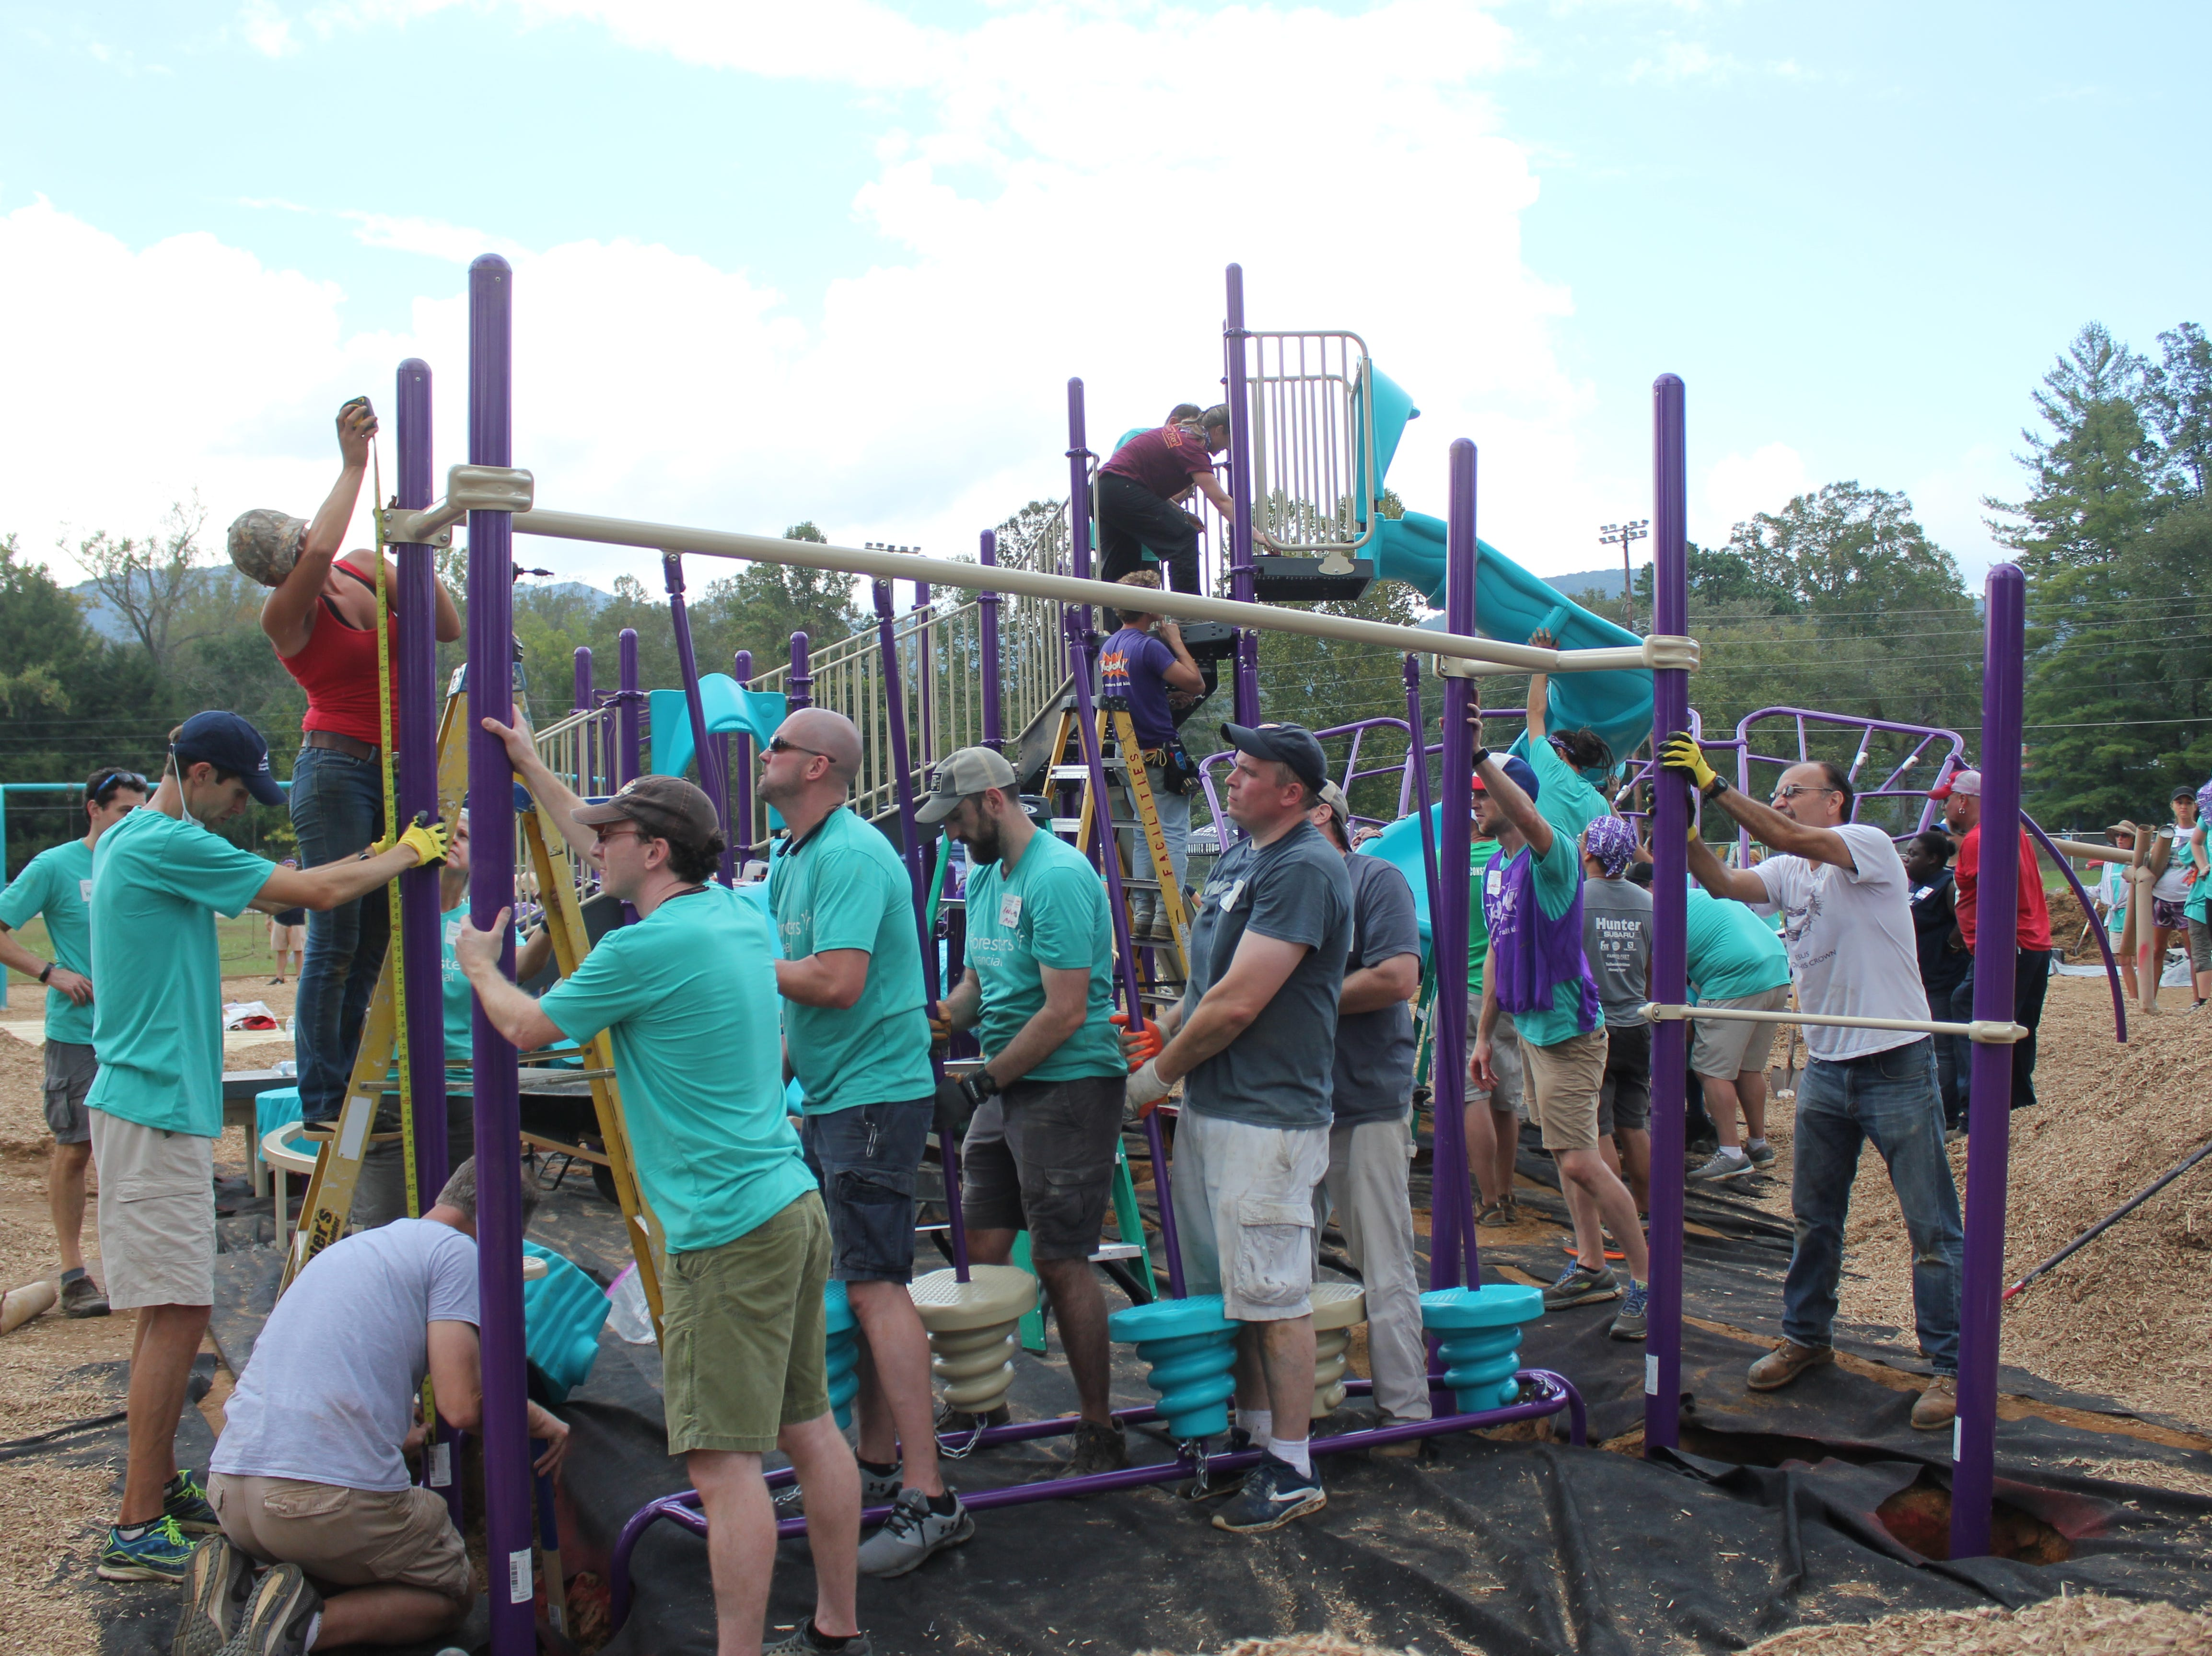 Over 200 volunteers showed up at Black Mountain Primary School on Saturday, Oct. 6 to construct a KaBOOM! playground. The project was made possible through a Build it With KaBOOM! grand, which was funded by Forester Financial. The YMCA of Western North Carolina and Black Mountain Primary partnered to apply for the grant, which they were awarded earlier this year.